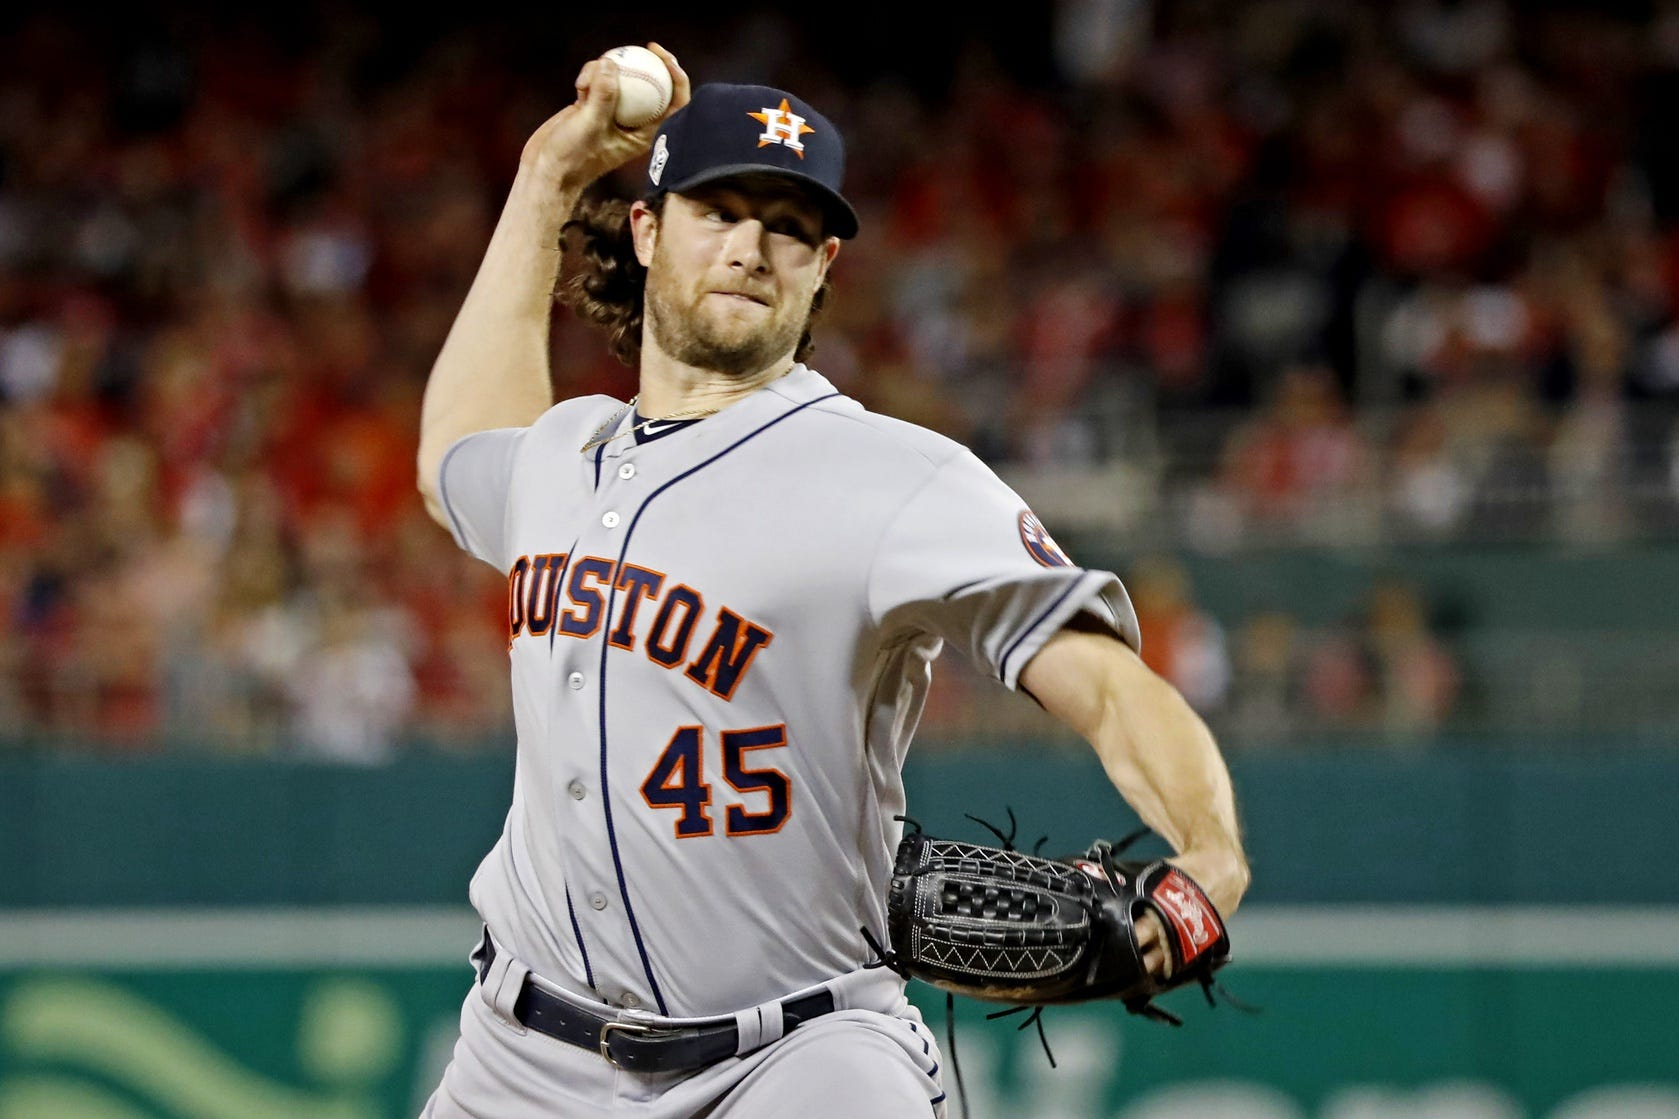 Yankees got Gerrit Cole. So now what for Red Sox?